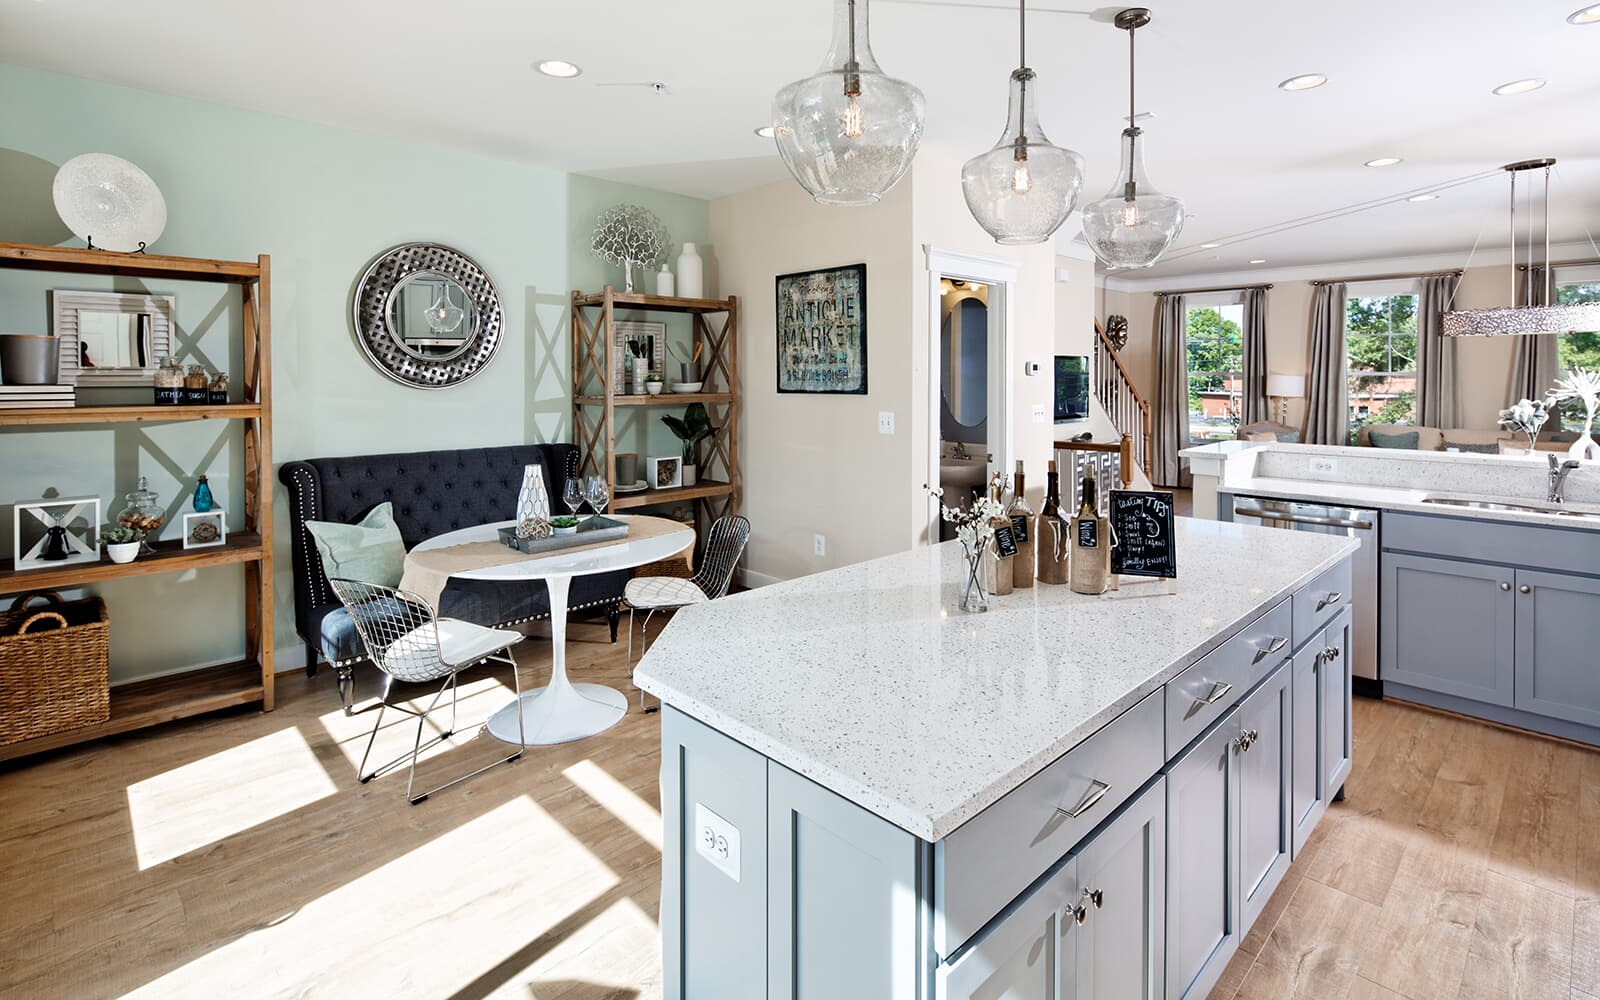 CamdenII-kitchen2-townhomes-north-potomac-md-travilah-station-brookfield-residential